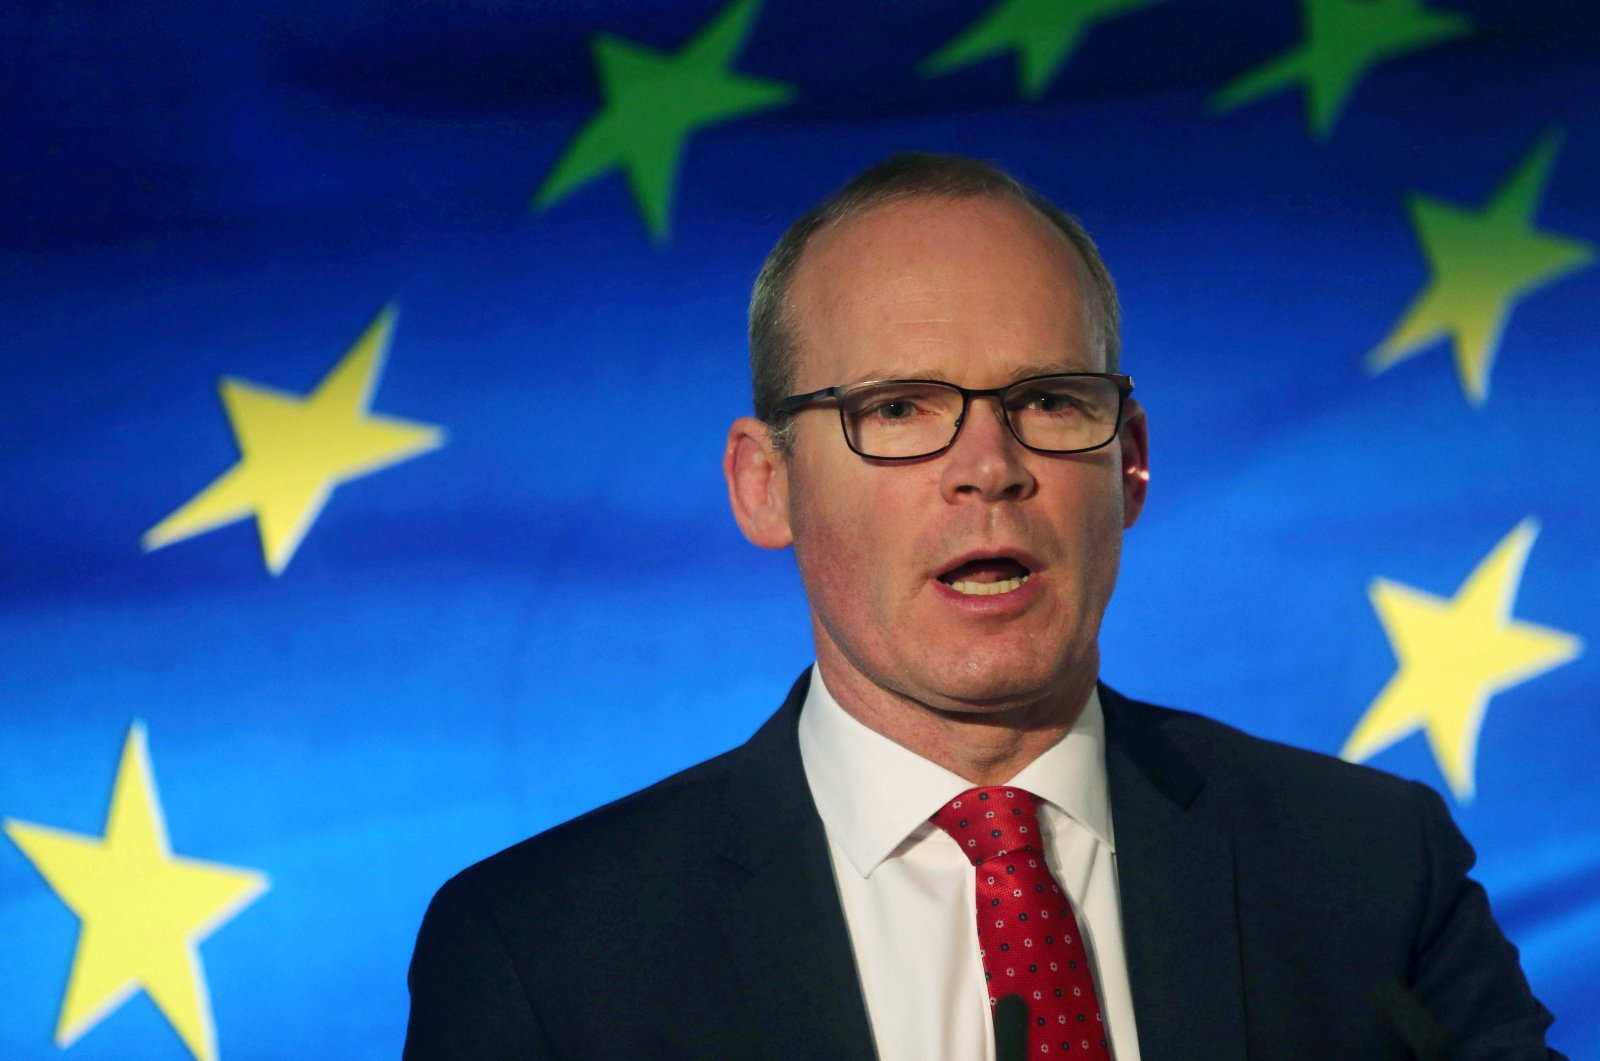 Irish Minister for Foreign Affairs Simon Coveney speaks at the launch of his party's manifesto for the Irish General Election in Dublin, Ireland, Jan. 24, 2020. (Reuters Photo)